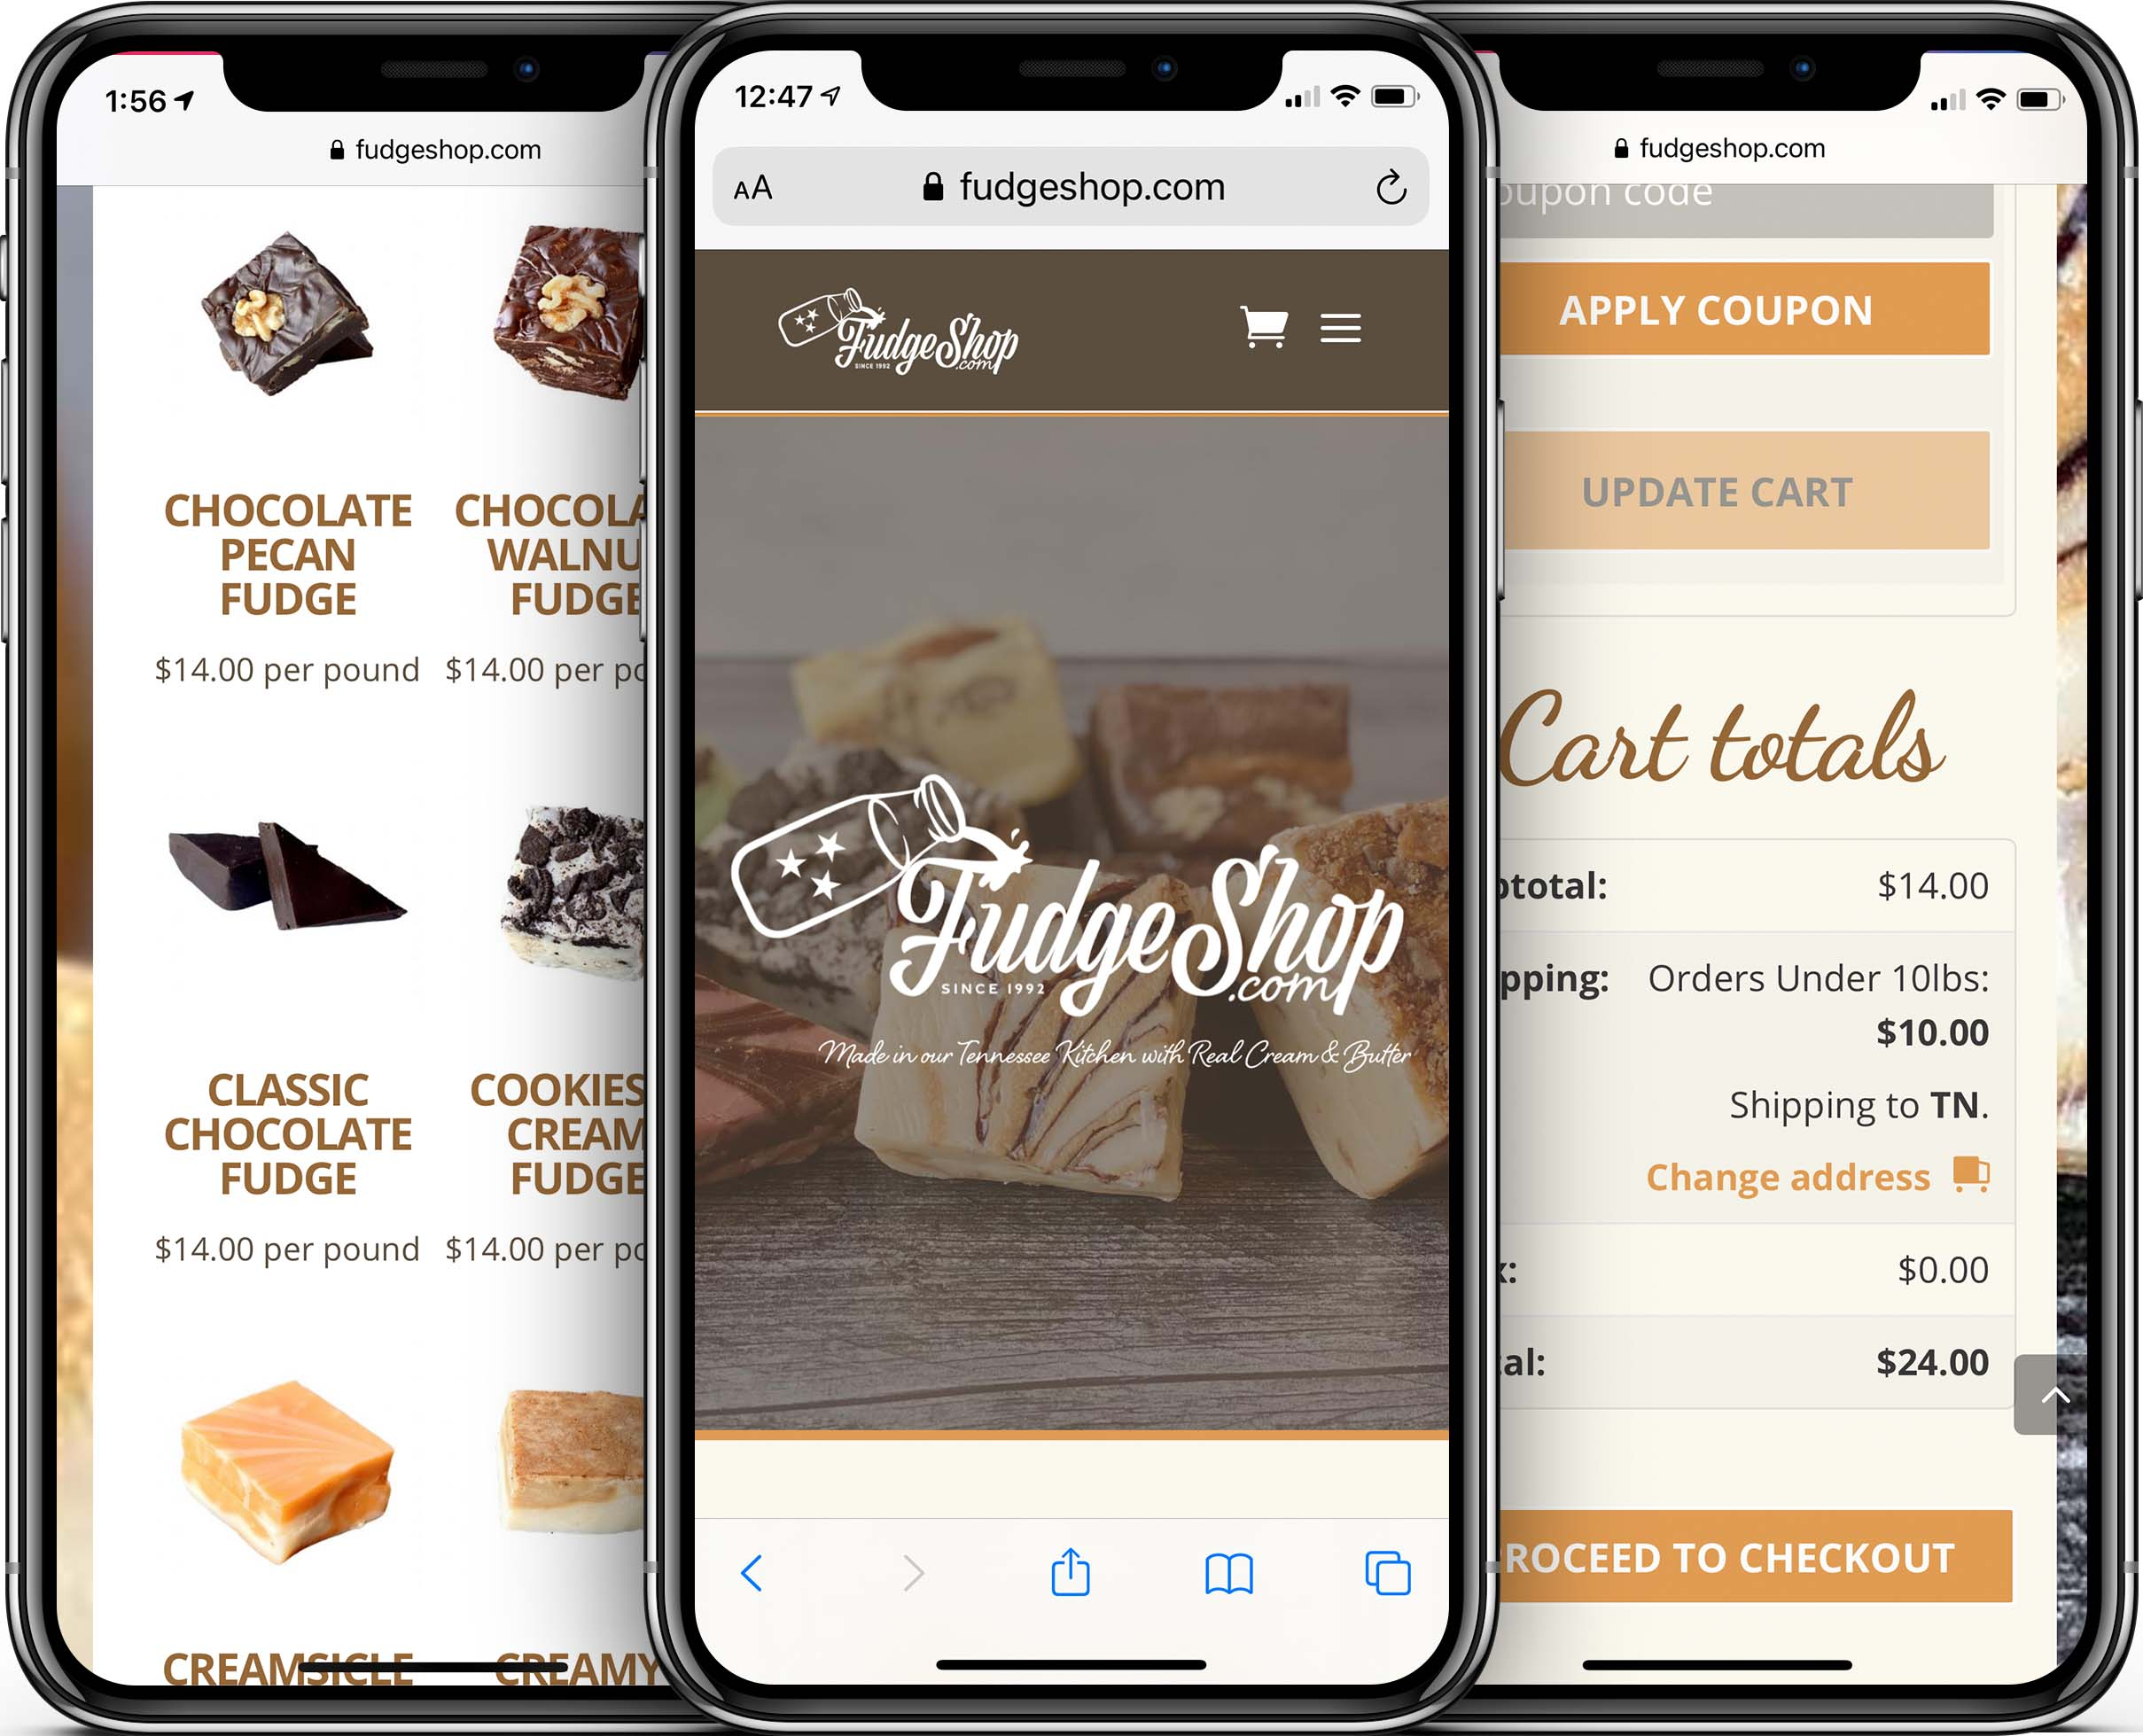 Fudge Shop Mobile-Friendly Web Design